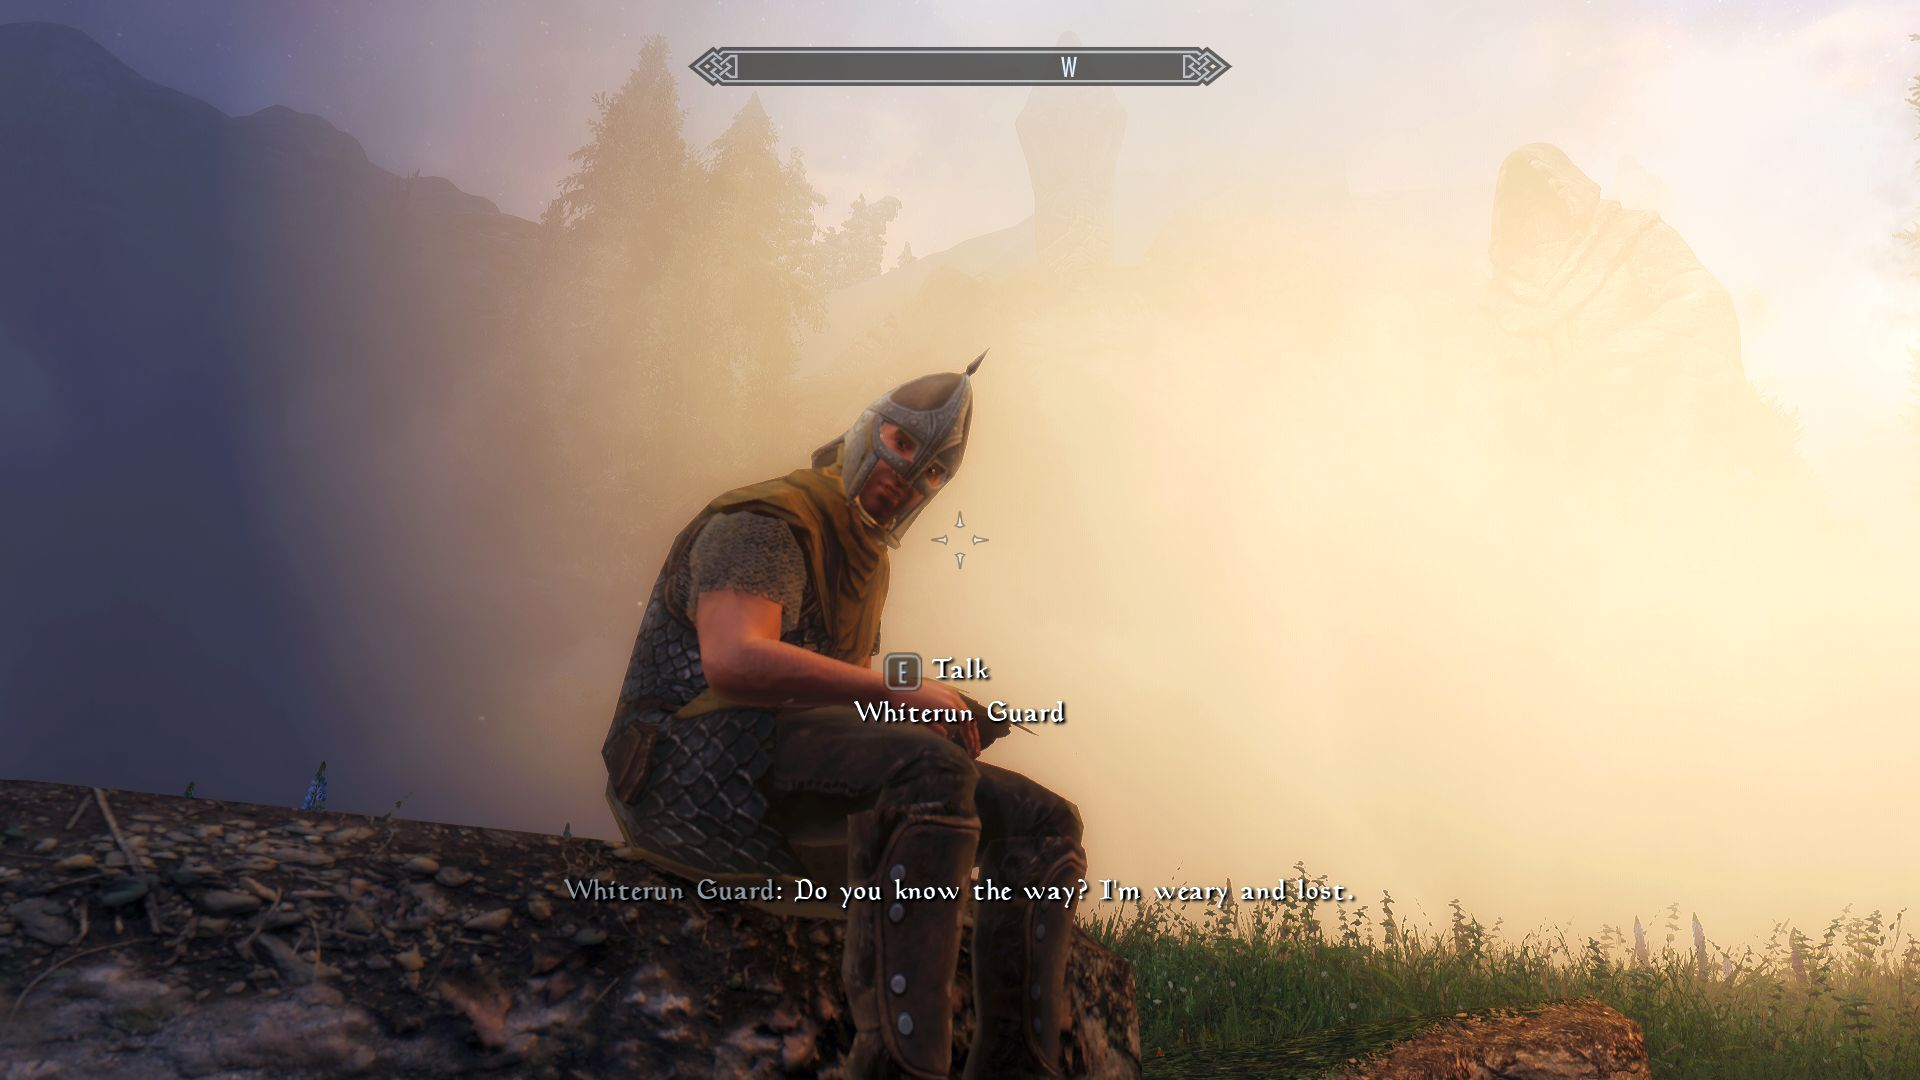 The popular Afterlife Skyrim mod is back to send NPCs to